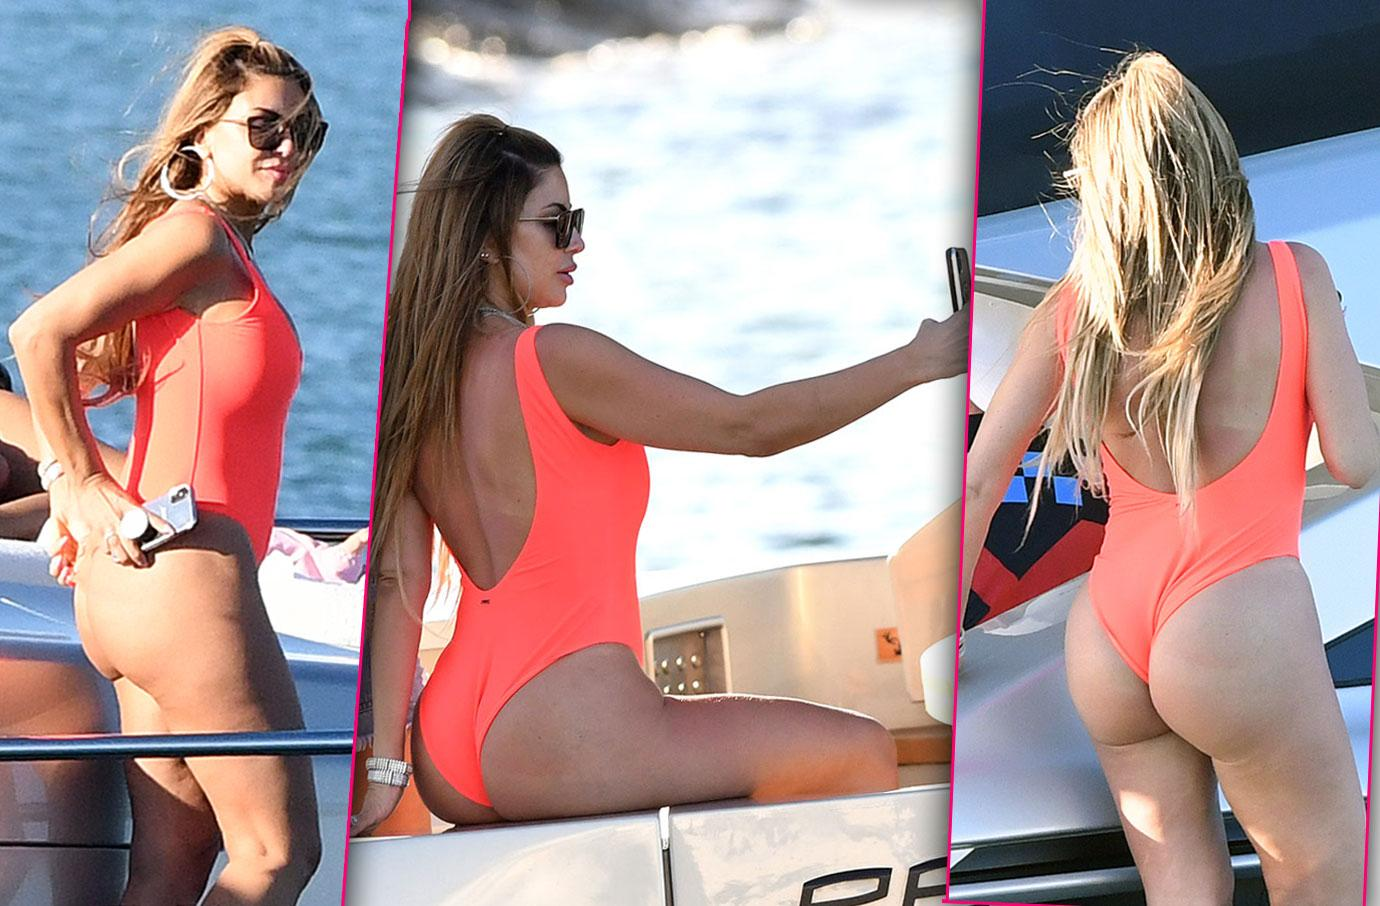 Larsa Pippen in Miami with Orange Swimsuit Miami